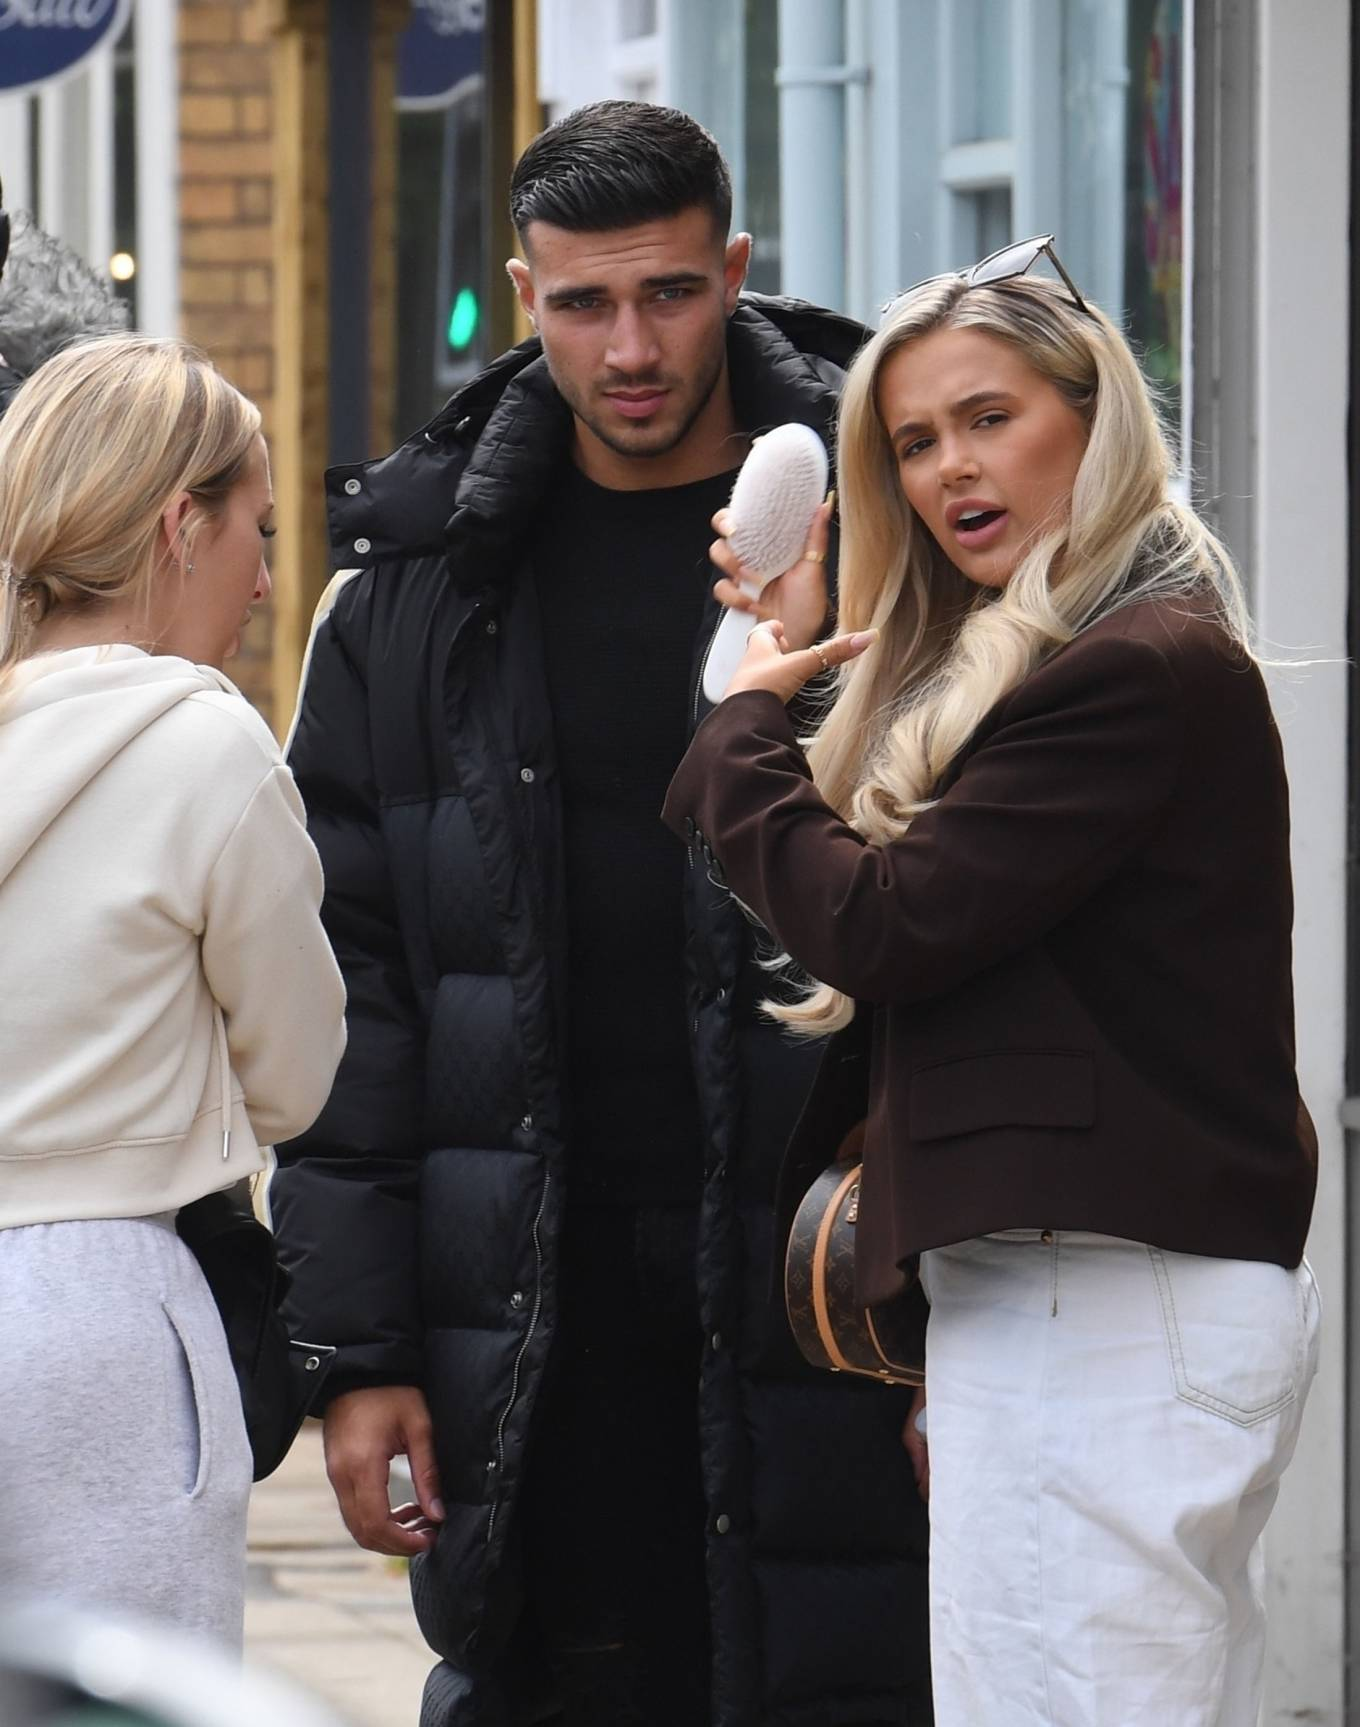 Molly-Mae Hague 2020 : Molly-Mae Hague and Tommy Fury – Seen while out in Cheshire -11